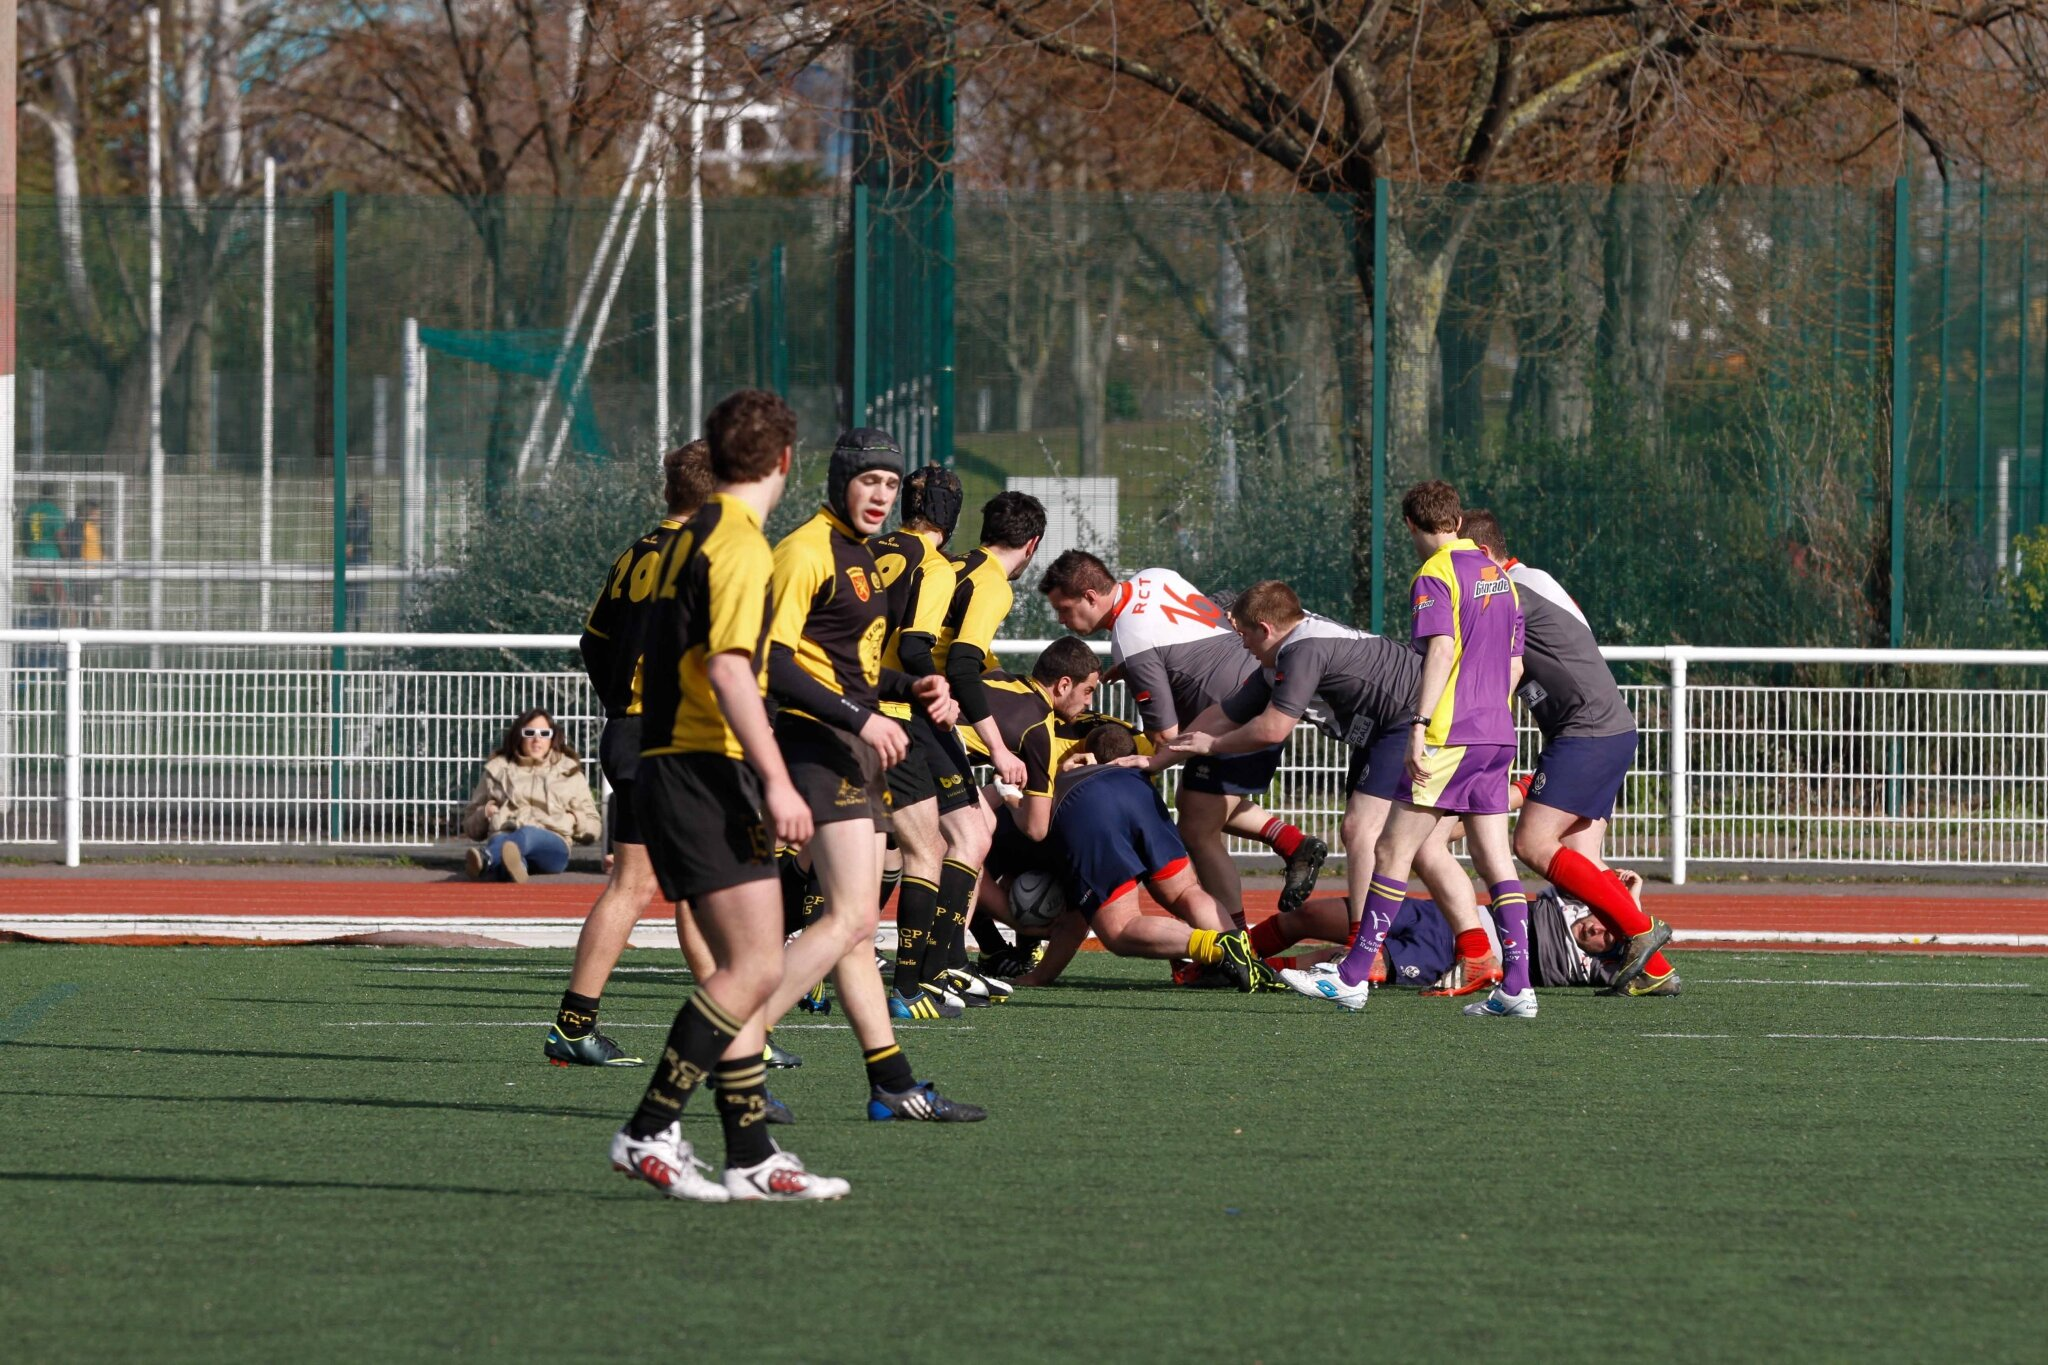 RCP15-RCT-R50